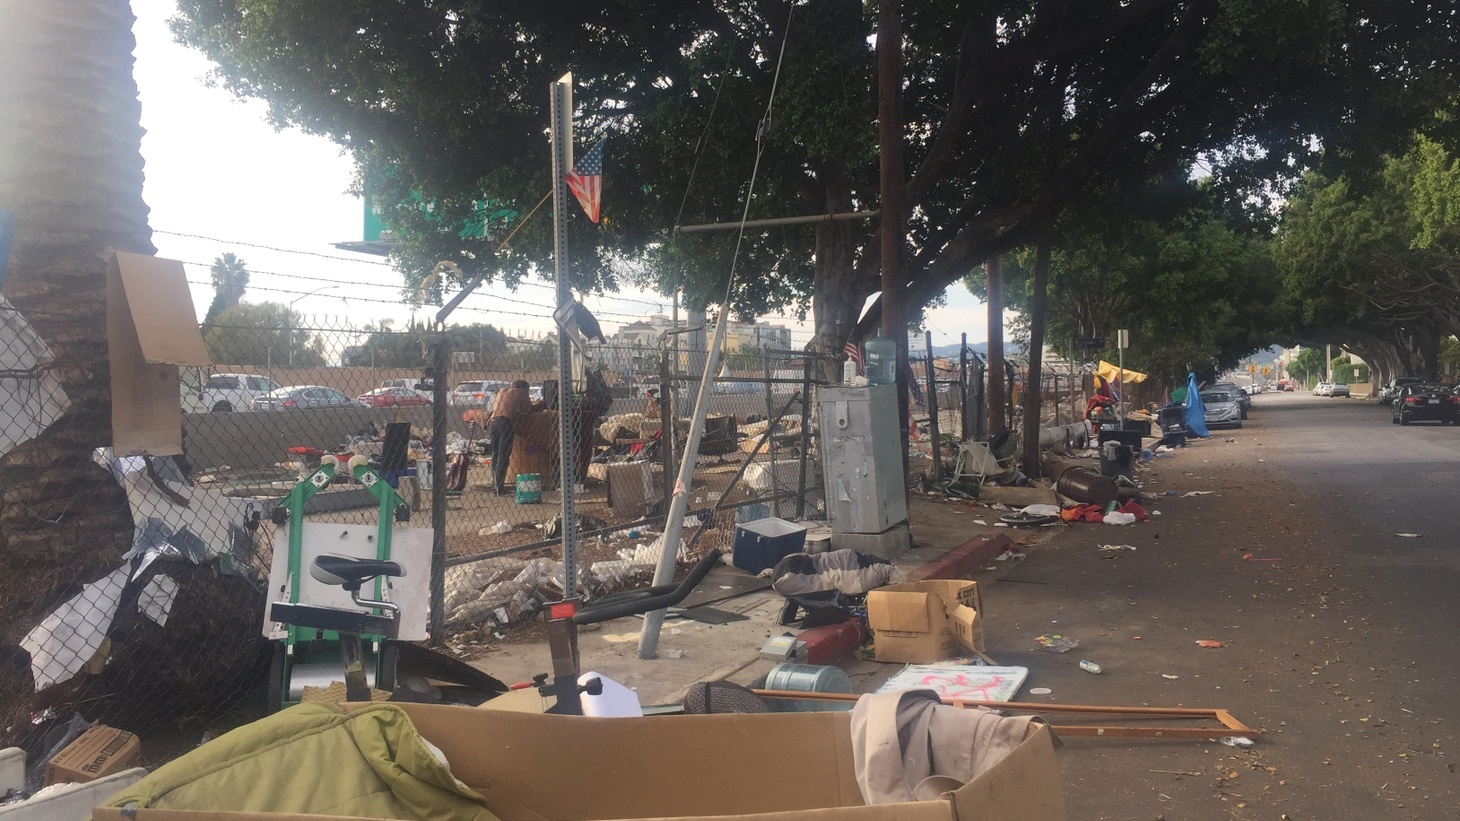 Press Play producer Anna Scott reports on the conditions in a homeless encampment in Sawtelle. And Spotlight, a new movie based on the Boston Globe's investigation of sexual abuse by Catholic priests, opens this weekend.